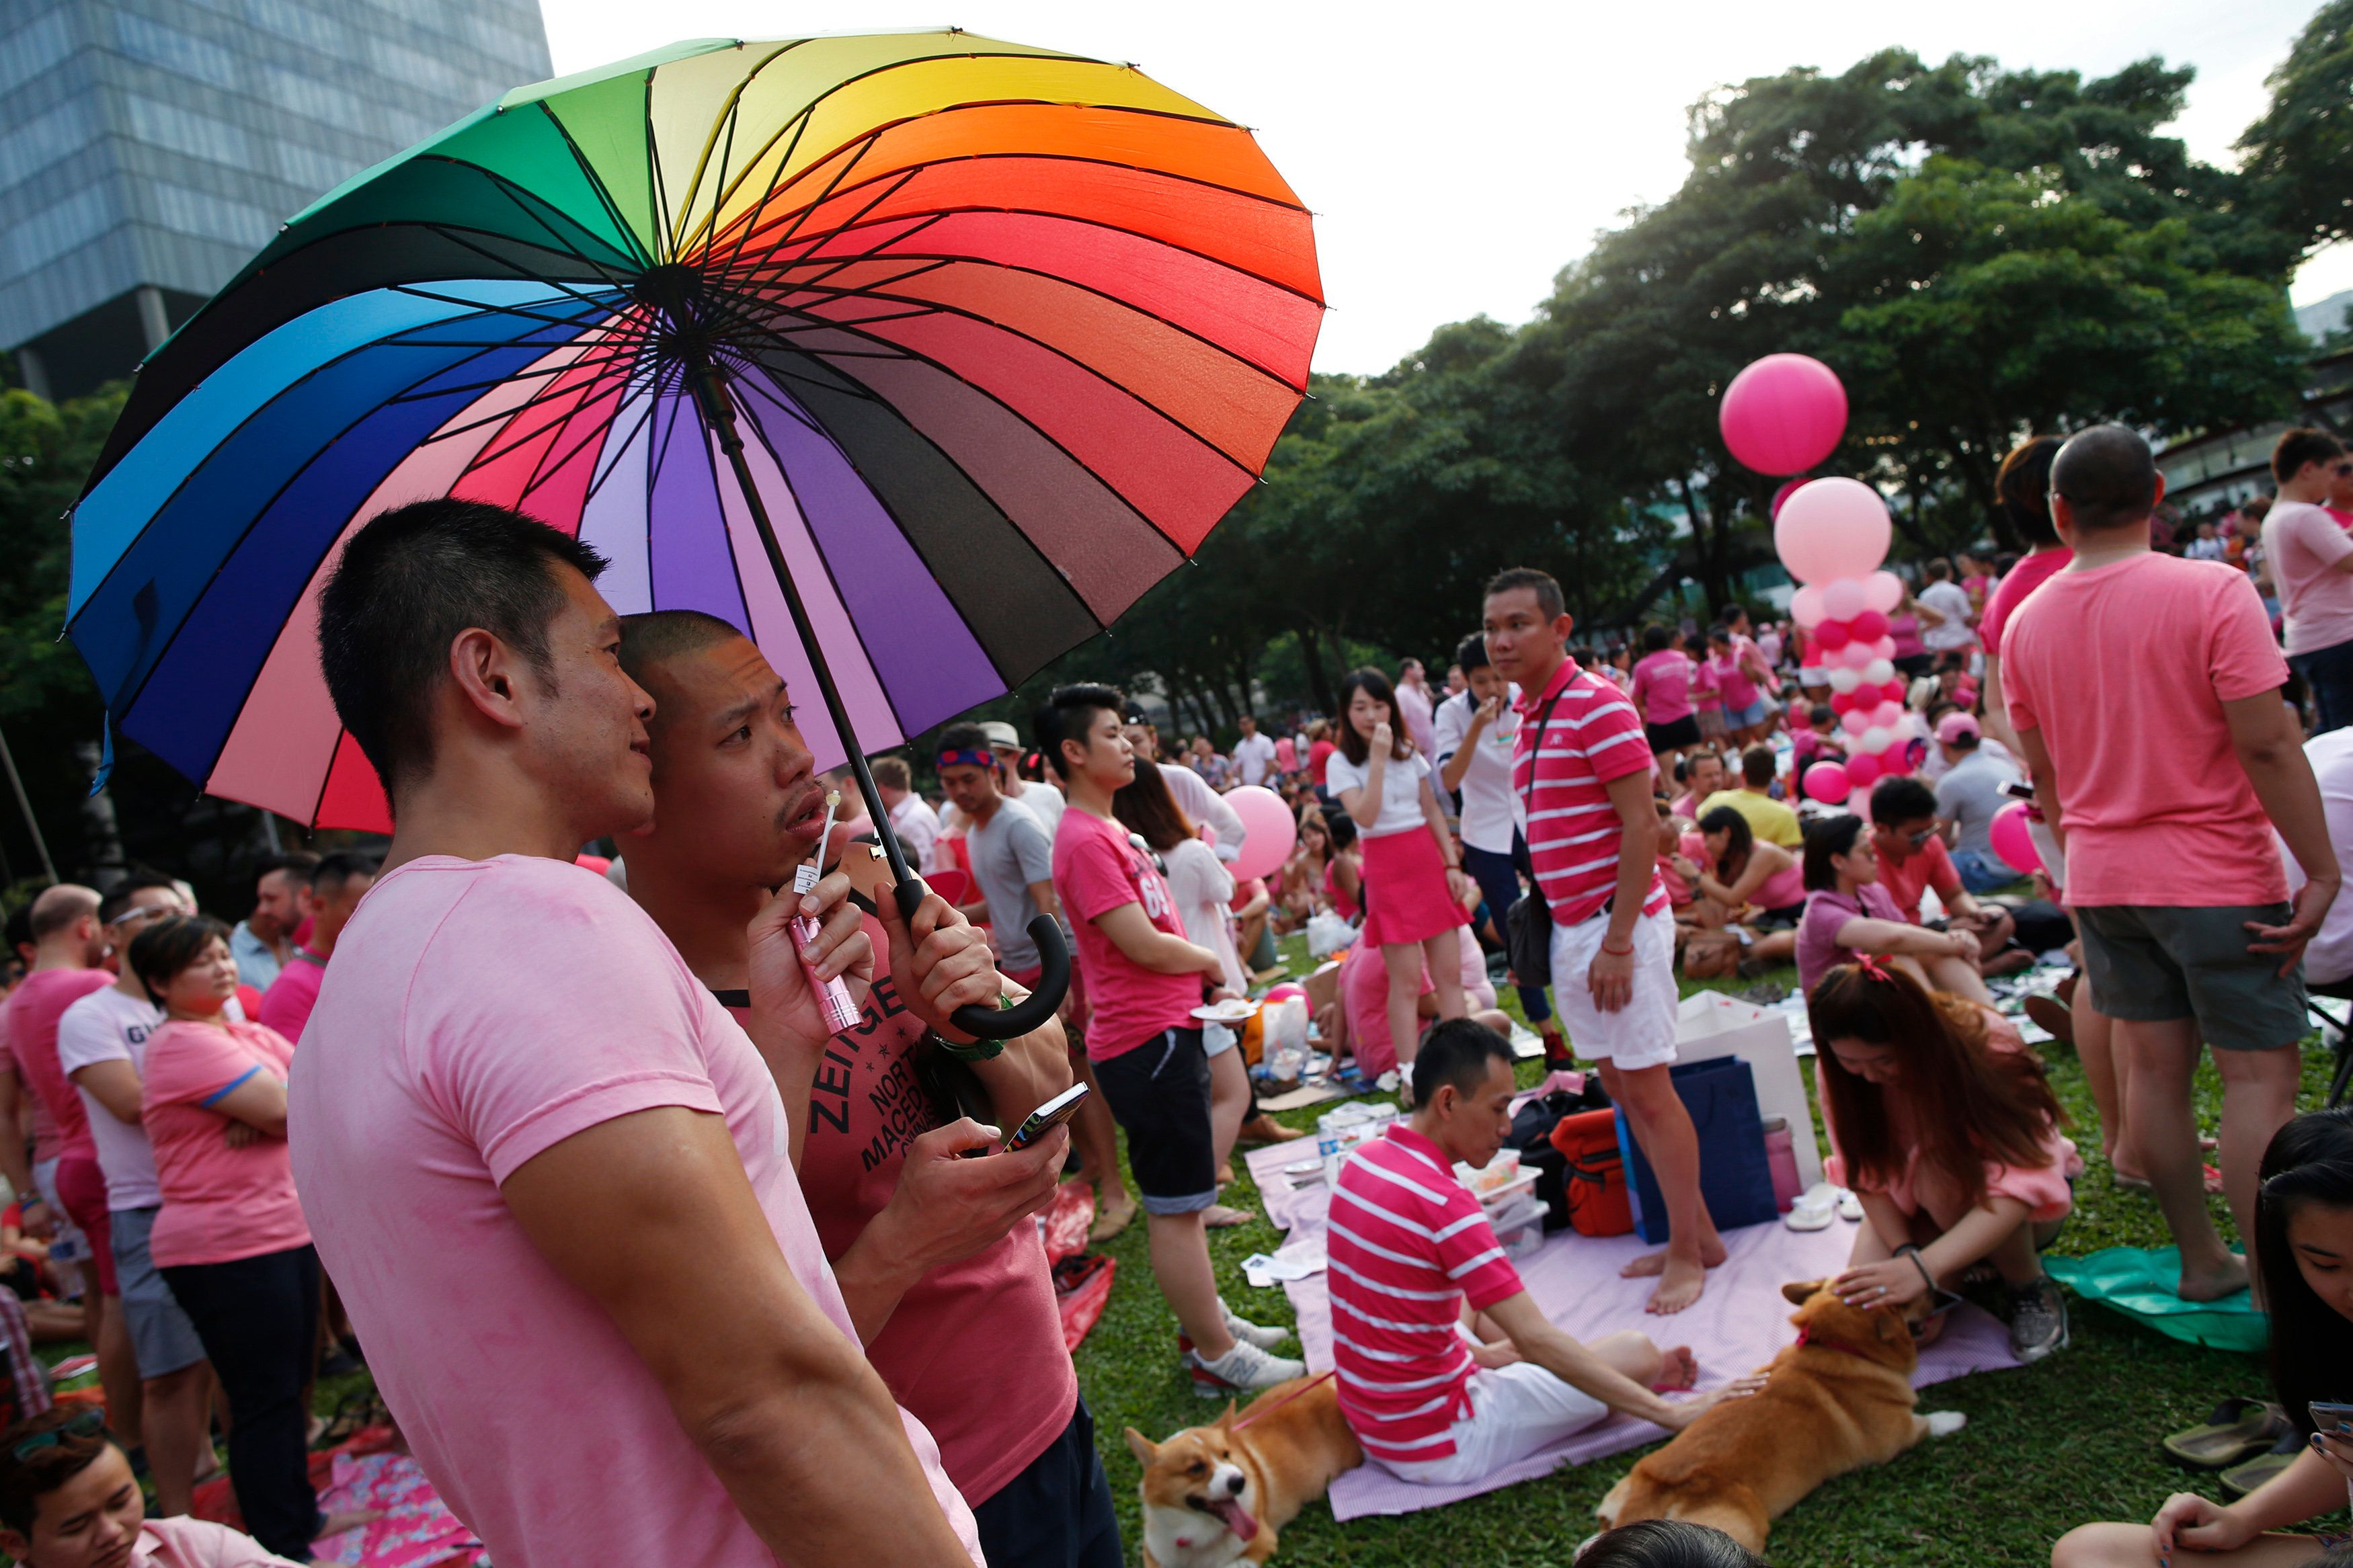 Participants dressed in pink enjoy a picnic before taking part in the forming of a giant pink dot at the Speakers' Corner in Hong Lim Park in Singapore June 28, 2014. The annual Pink Dot Sg event promotes an acceptance of the Lesbian, Gay, Bisexual and Transgender (LGBT) community in Singapore, according to organisers. REUTERS/Edgar Su (SINGAPORE - Tags: SOCIETY)